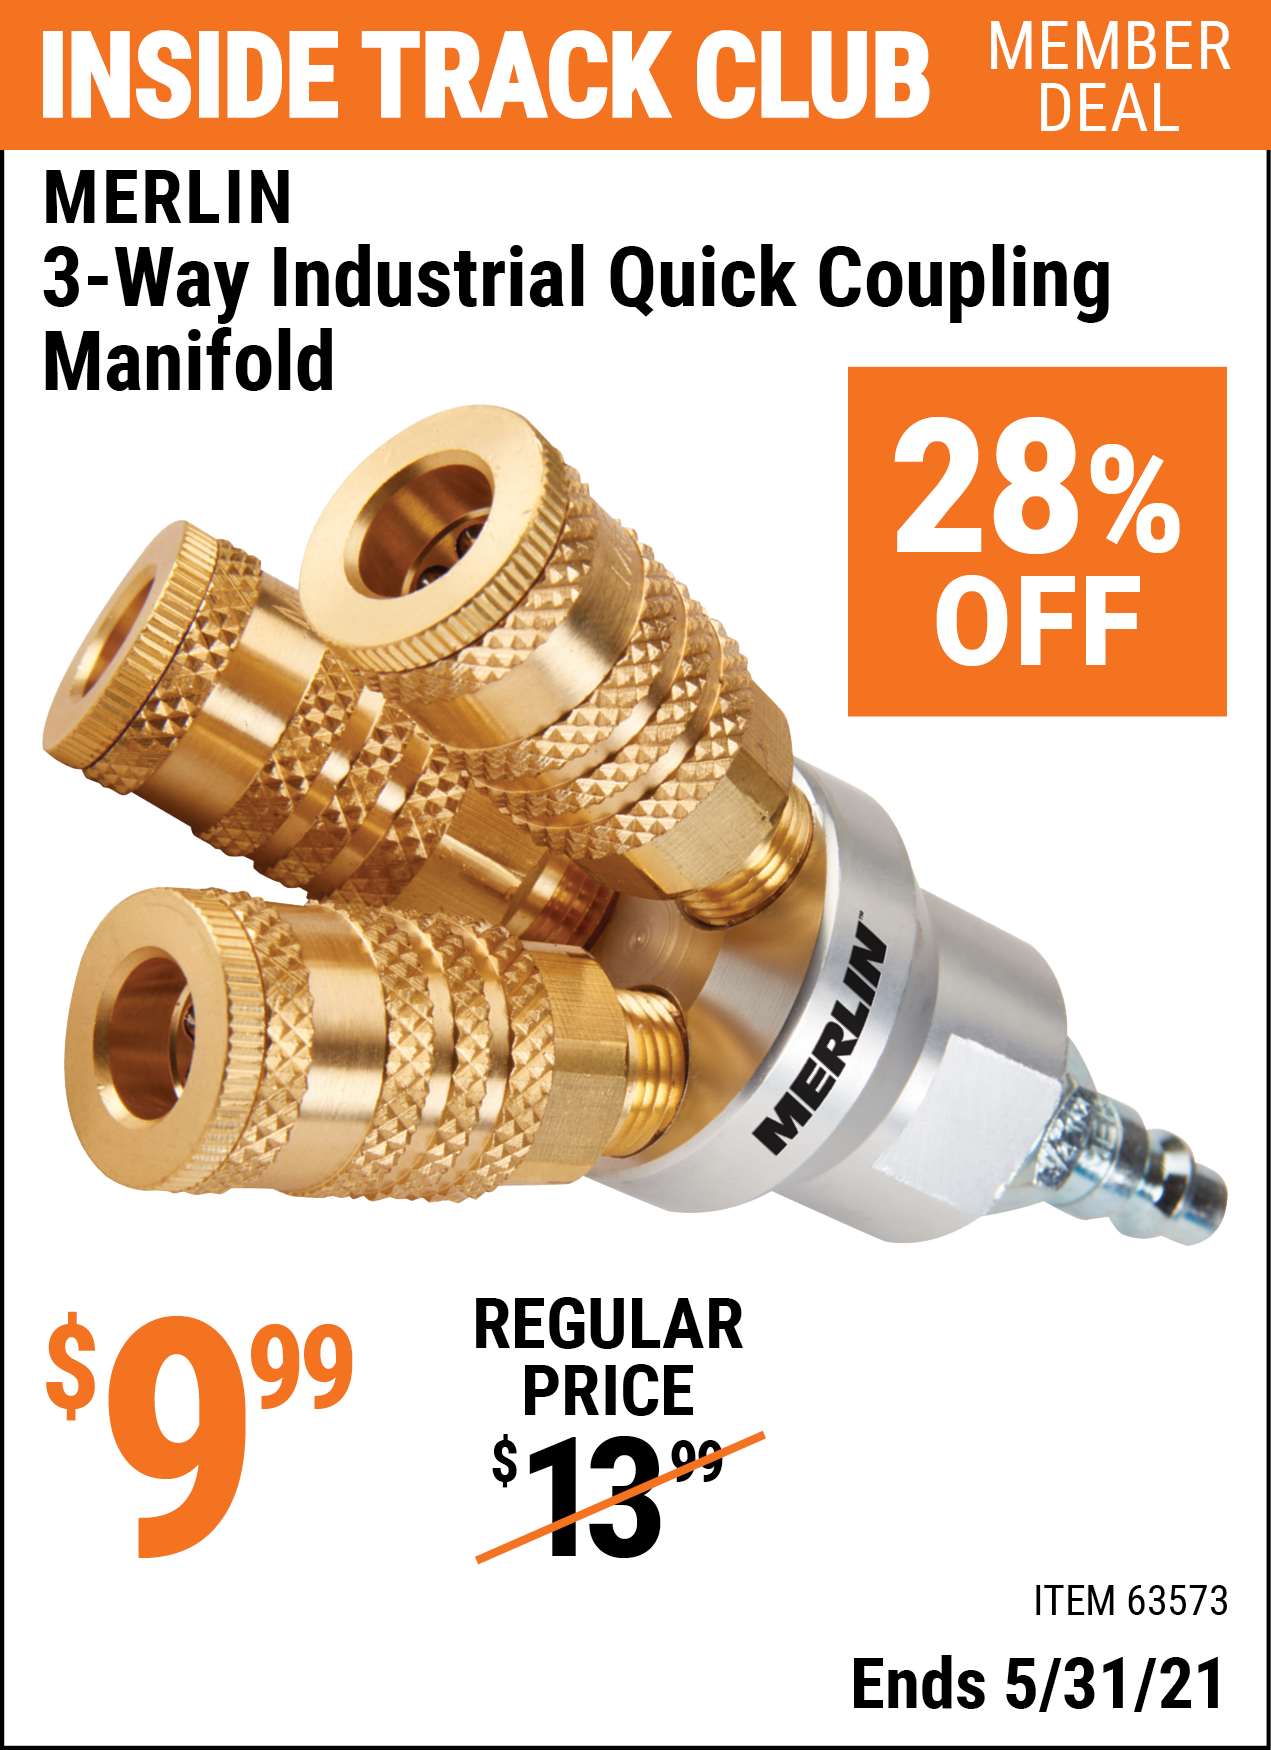 Inside Track Club members can buy the MERLIN 3-Way Industrial Quick Coupling Manifold (Item 63573) for $9.99, valid through 5/31/2021.